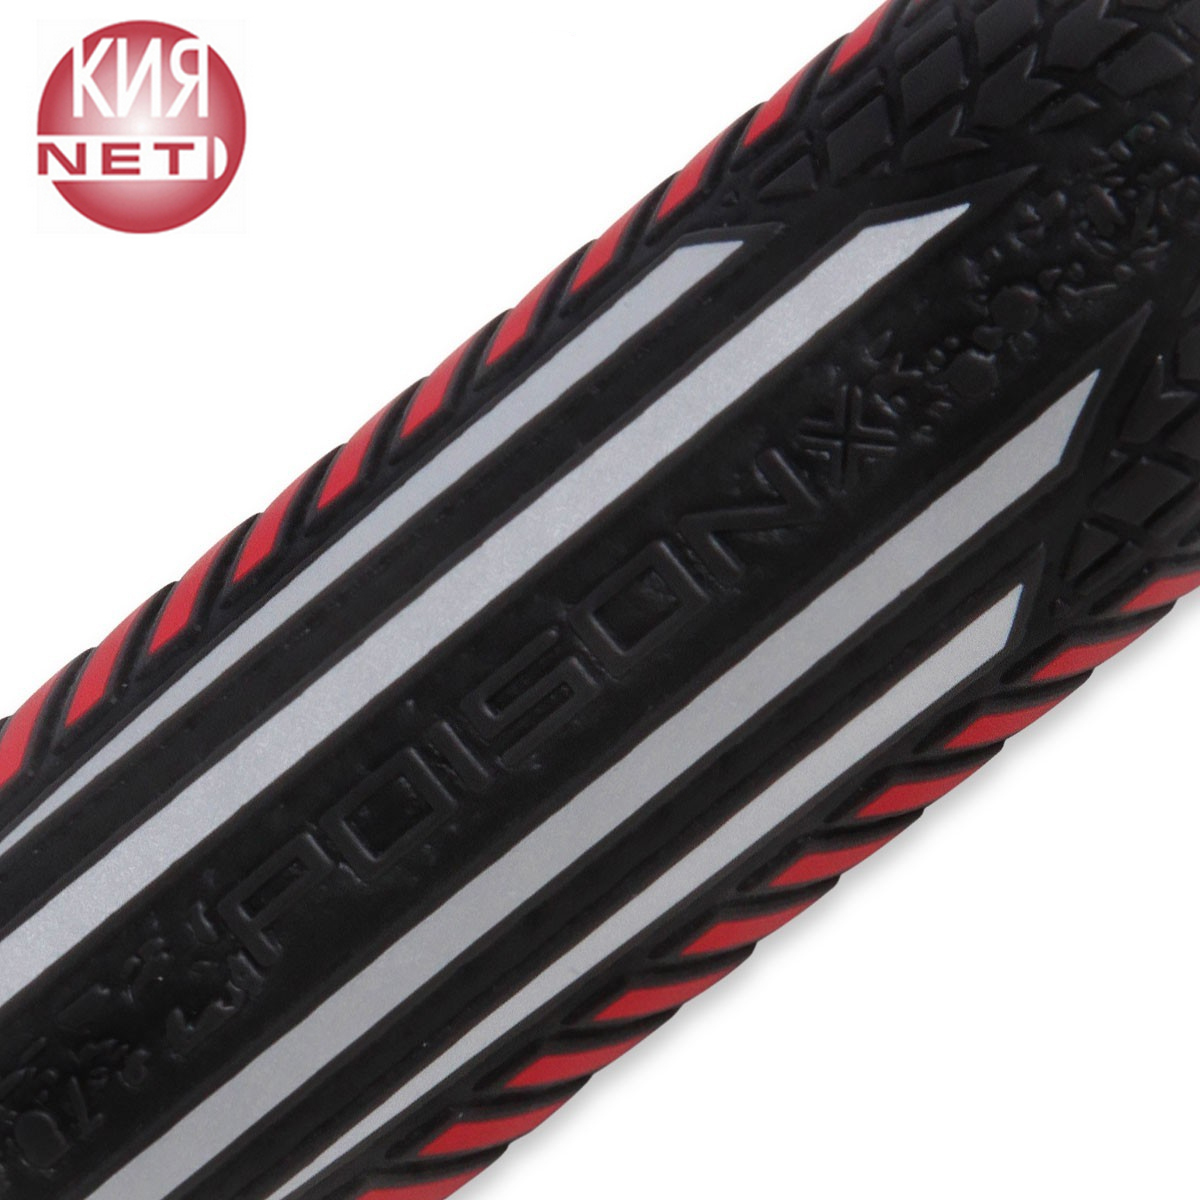 КИЙ POISON VX³ JUMP RED AND BLACK GTX™ GRIP 2PC ПУЛ 7,5OZ